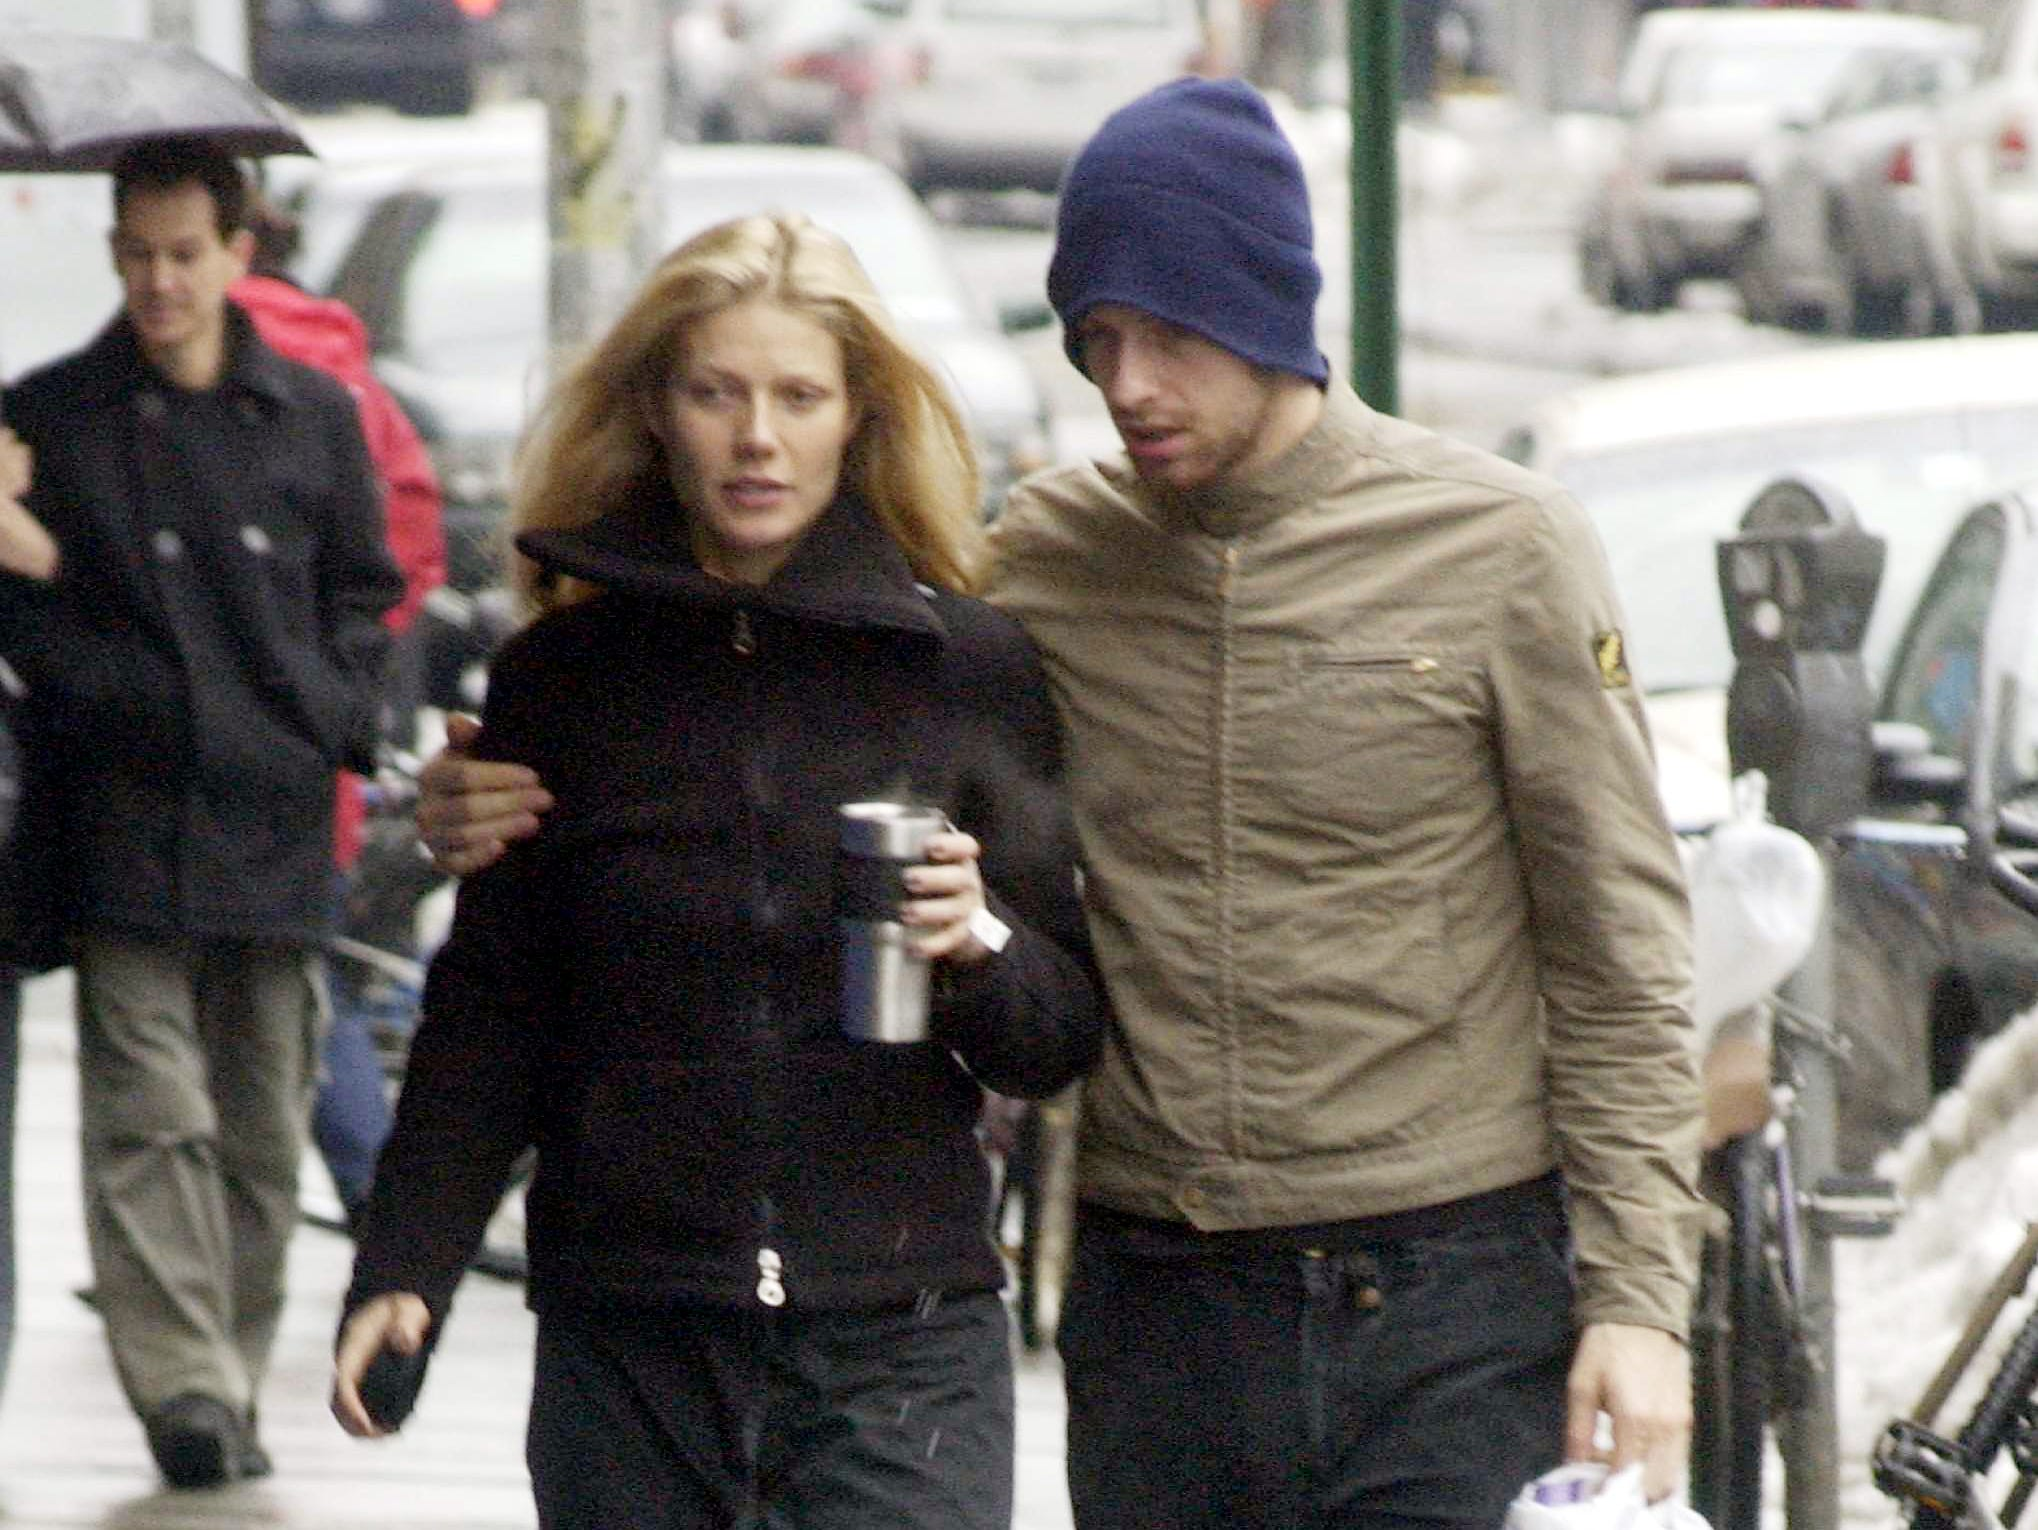 NEW YORK - FEBRUARY 23:  Actress Gwyneth Paltrow walks with her boyfriend musician Chris Martin of Coldplay February 23, 2003 in New York City.  (Photo by Mario Magnani/Getty Images) --- DATE TAKEN: 2/23/2003  By Mario Magnani   Getty Images    New York   ORG XMIT: PX98925